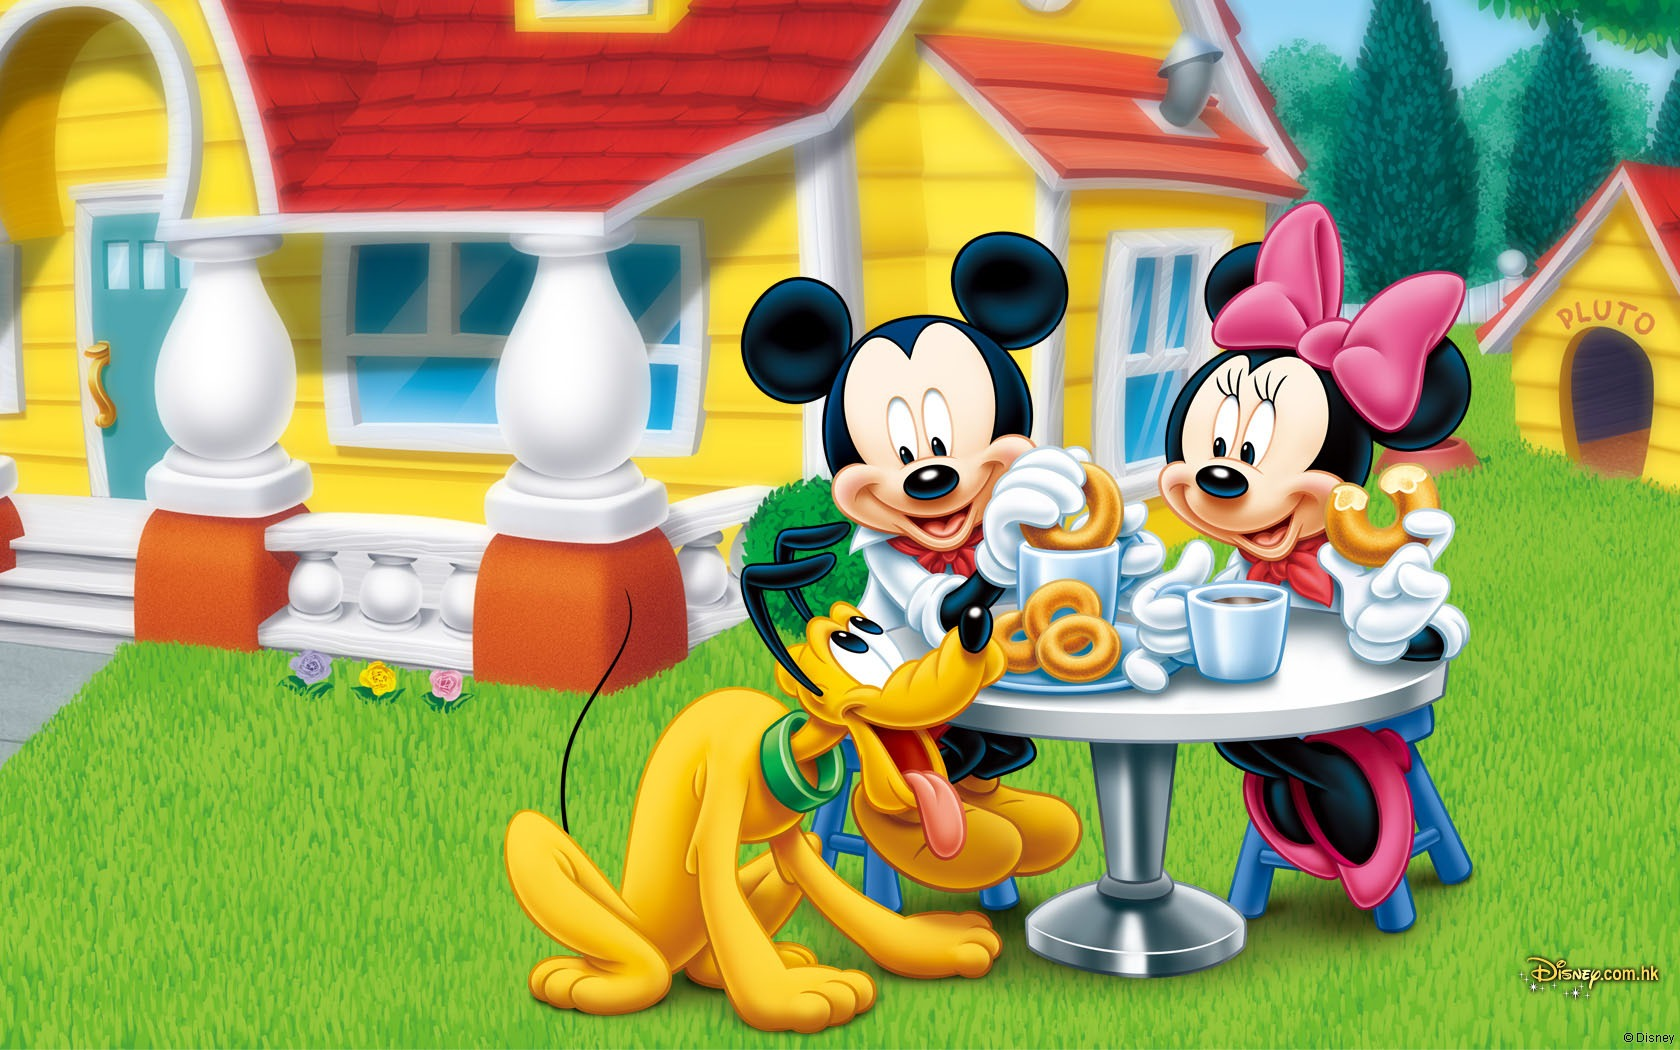 Mouse Wallpaper HD Disney cartoon Mickey Wallpaper Desktop 1680x1050